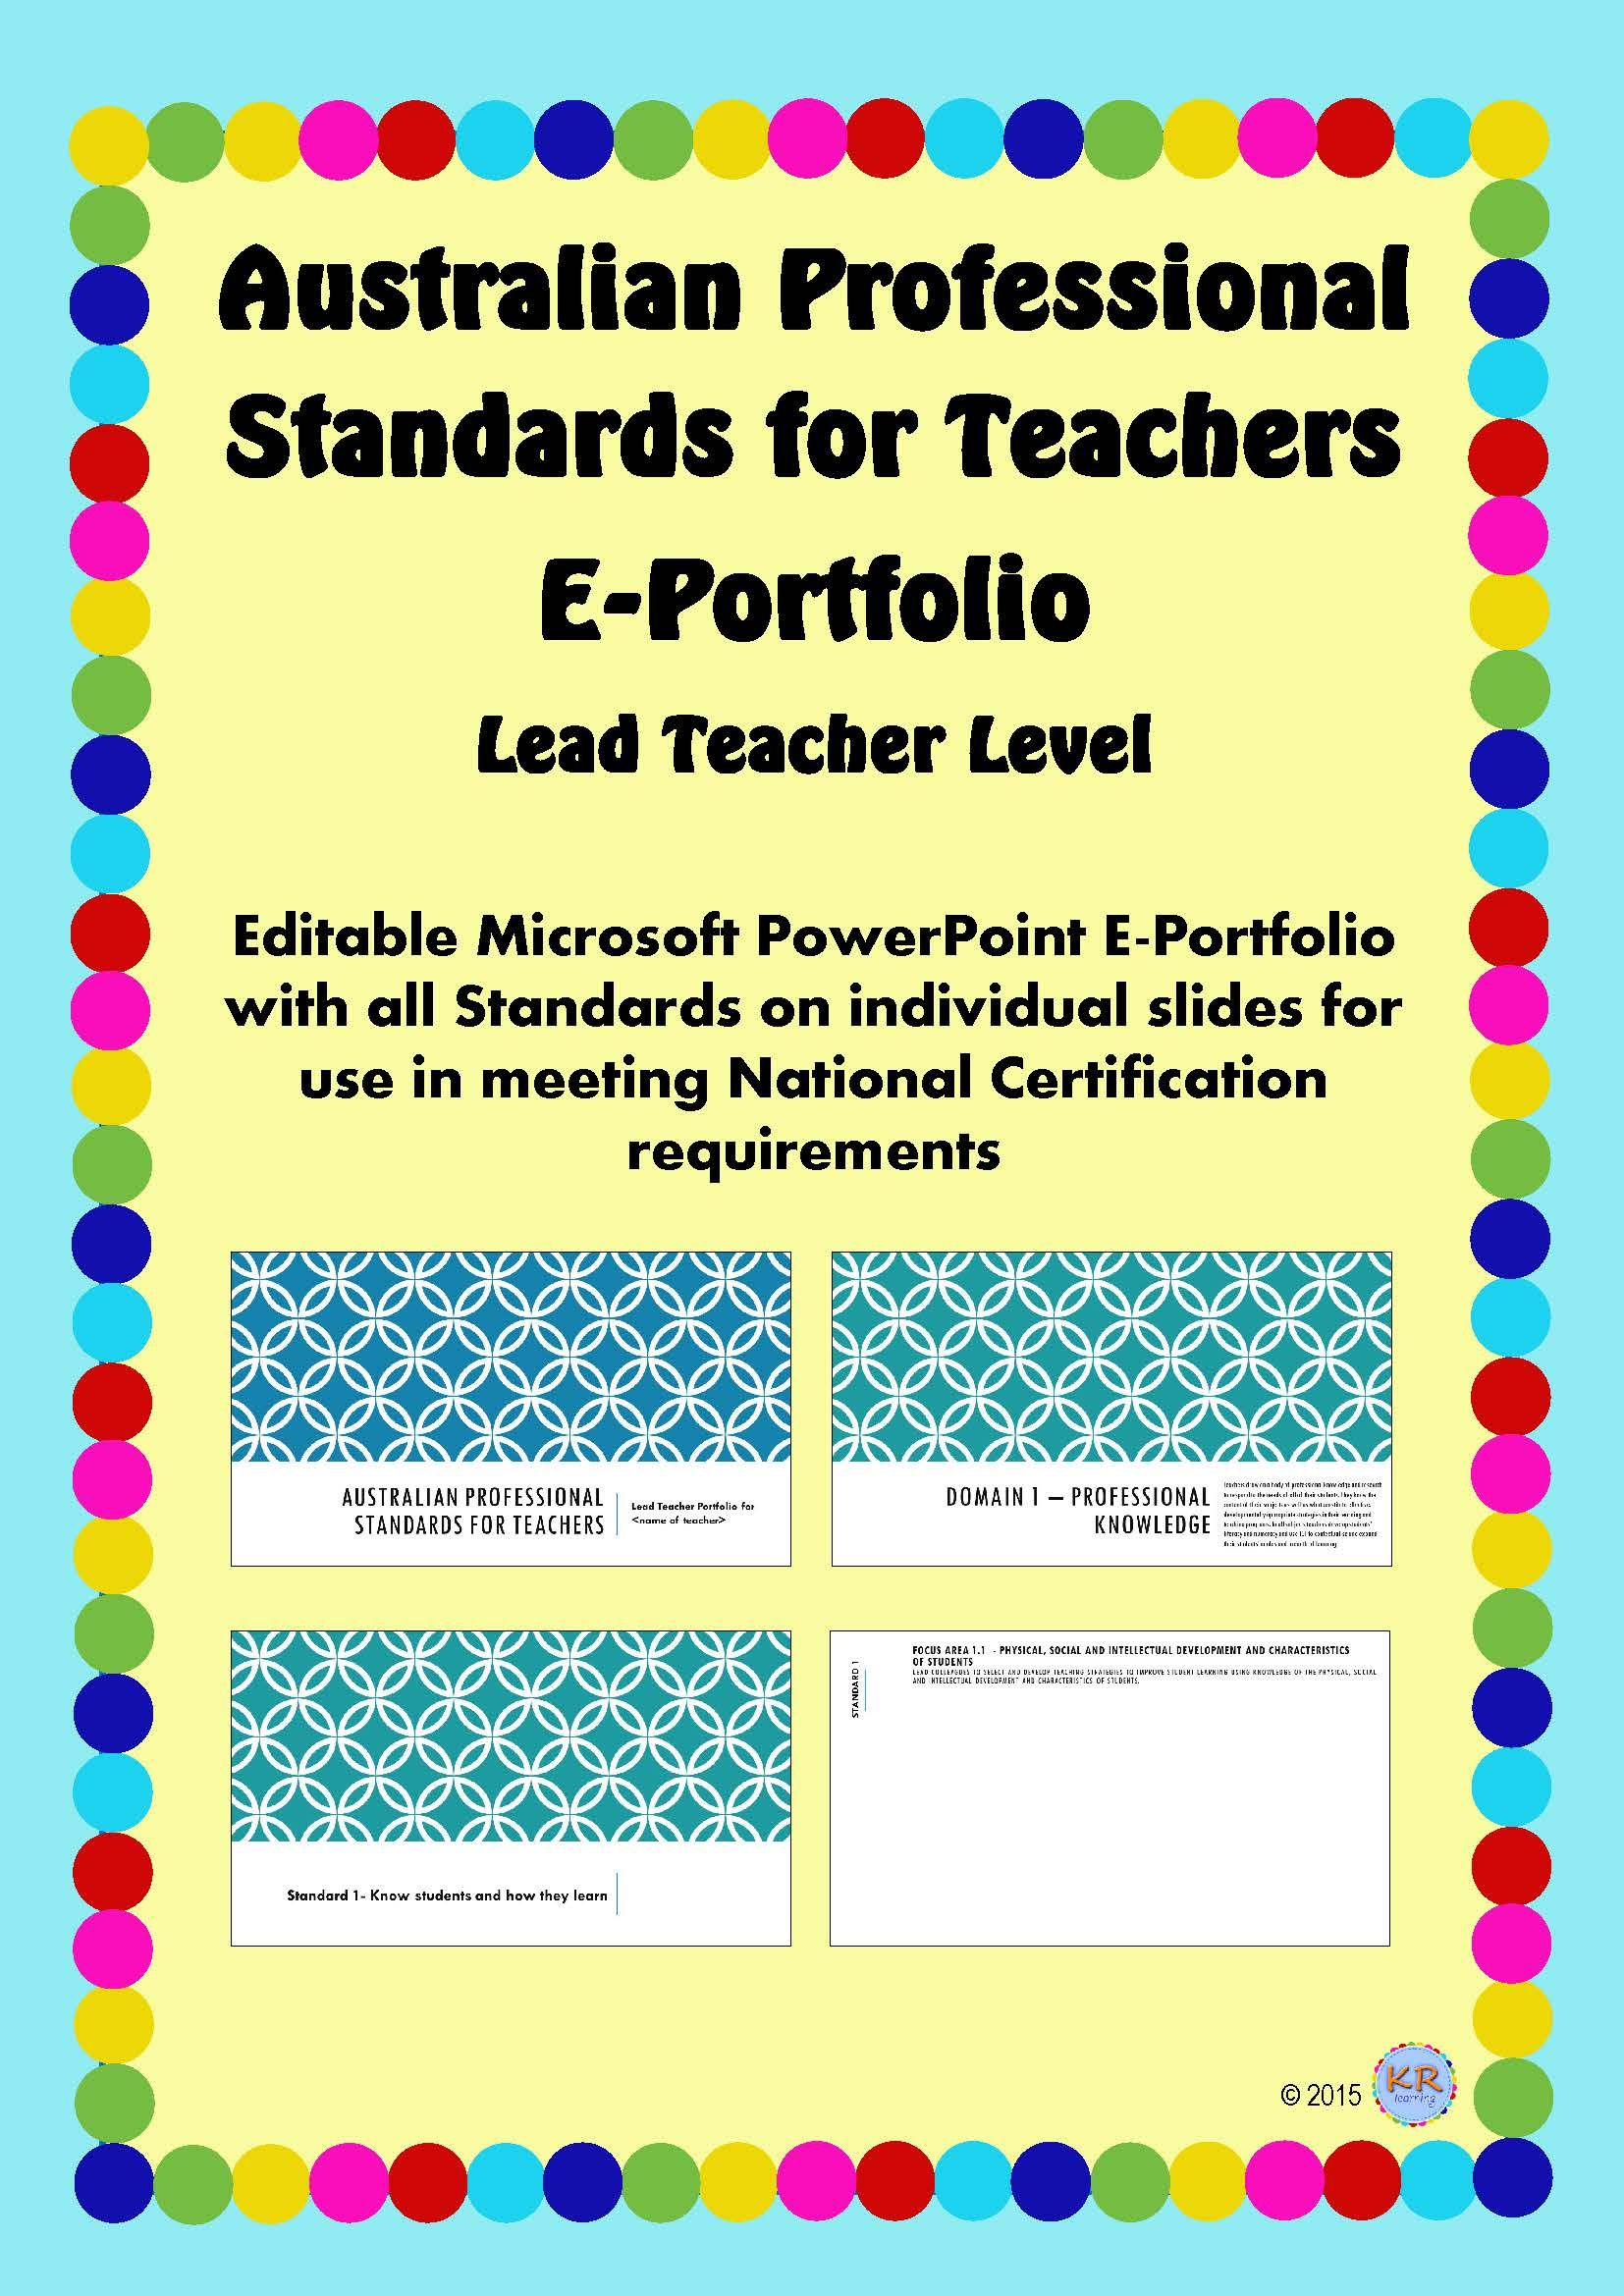 Lead teacher level australian professional standards for australian professional standards for teachers e portfolio ppt highly accomplished teacher level are you preparing for national certification as a highly xflitez Choice Image